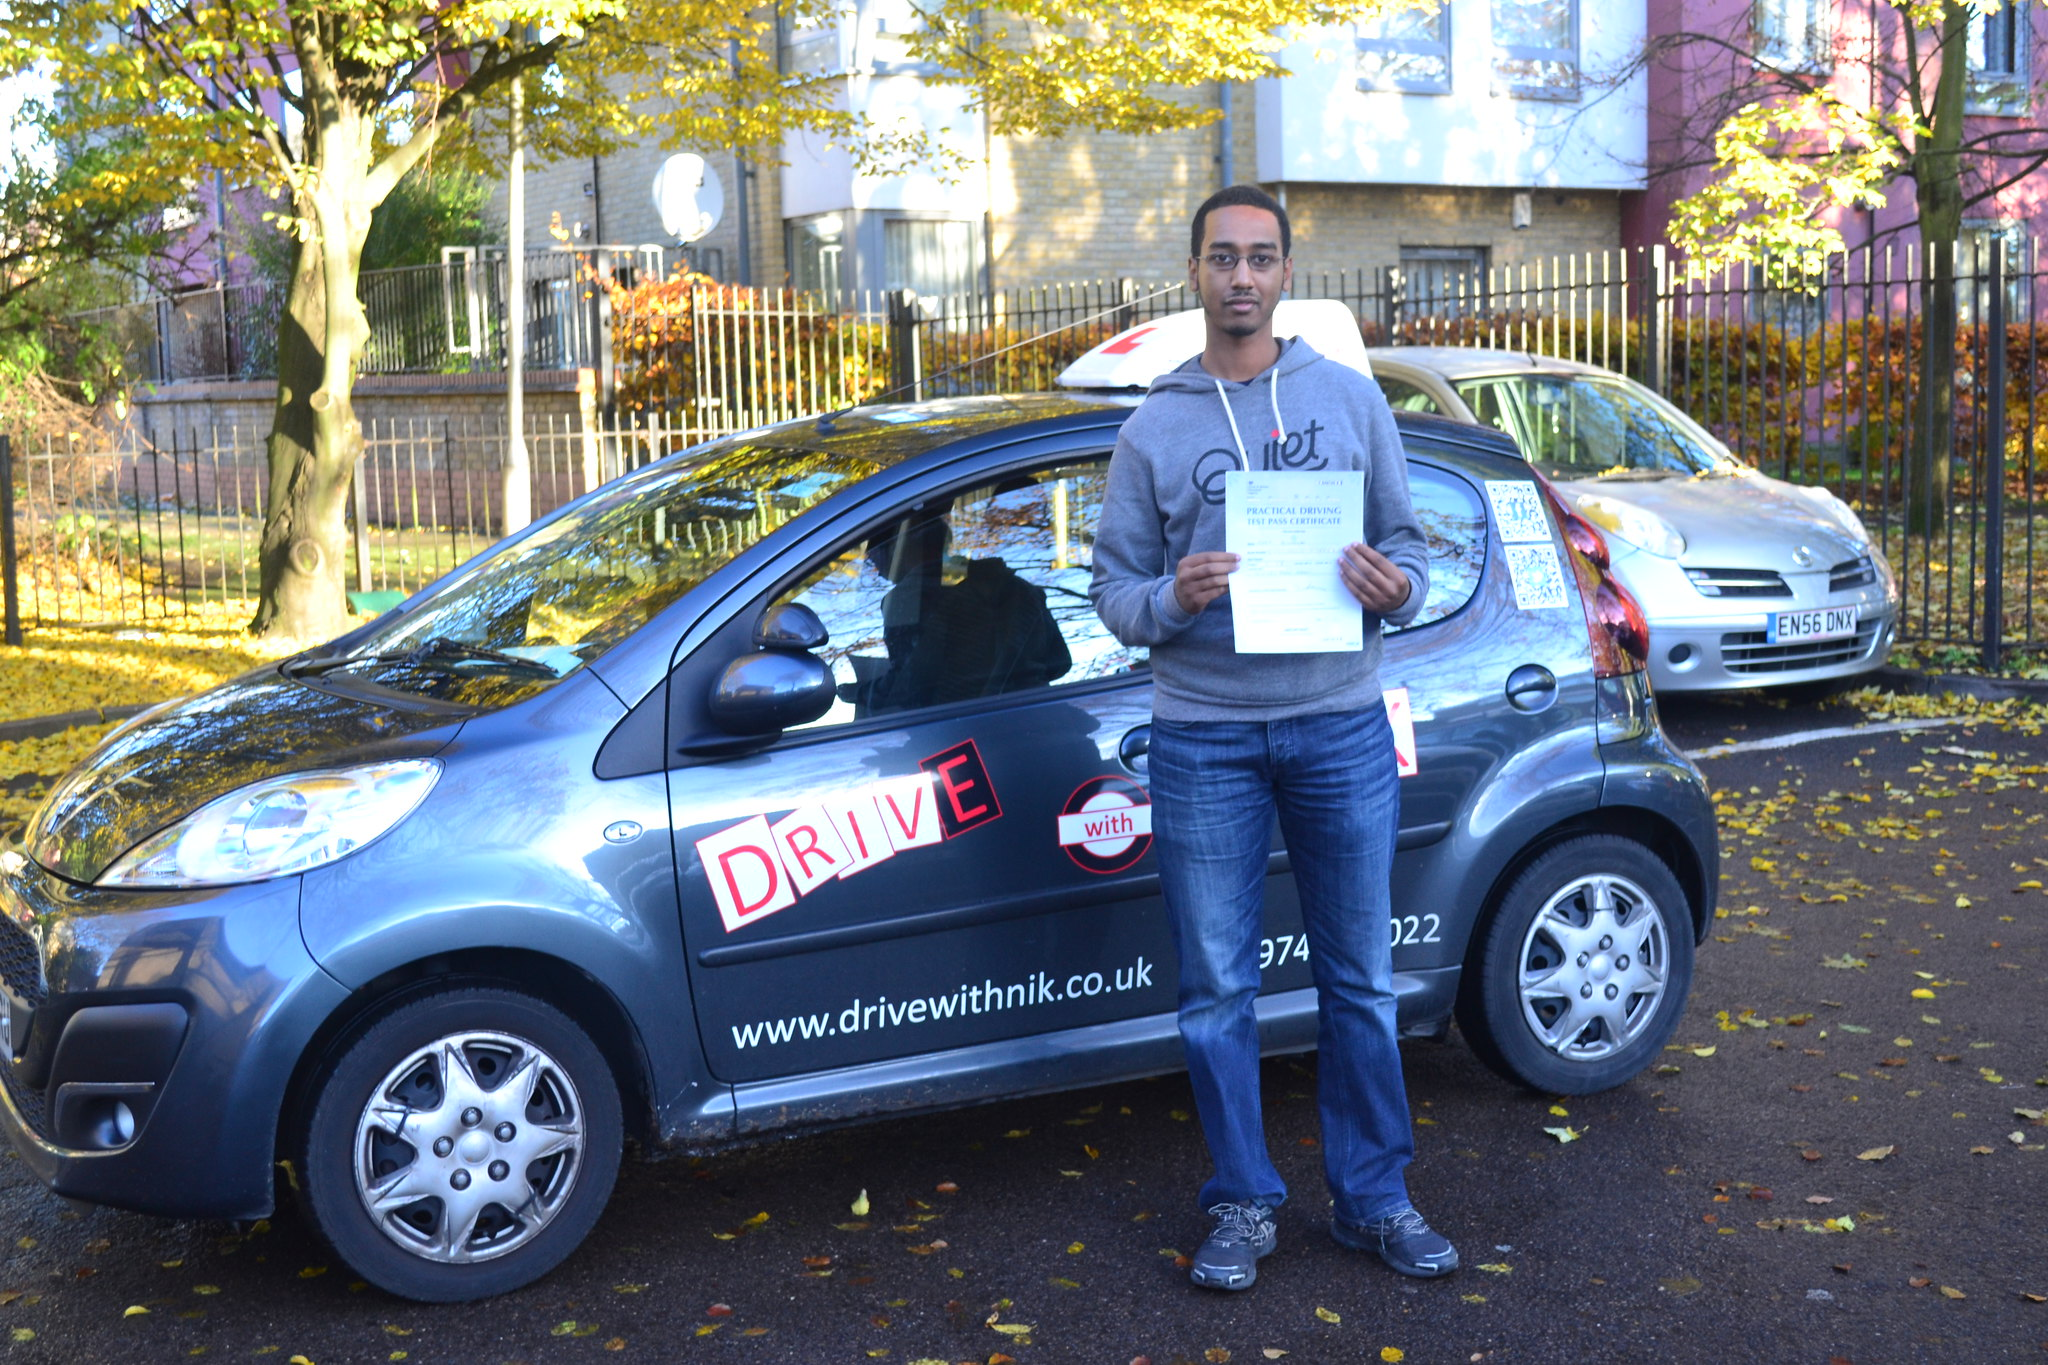 Manual driving lessons North London Awet passed his practical driving test first time with Drive with Nik